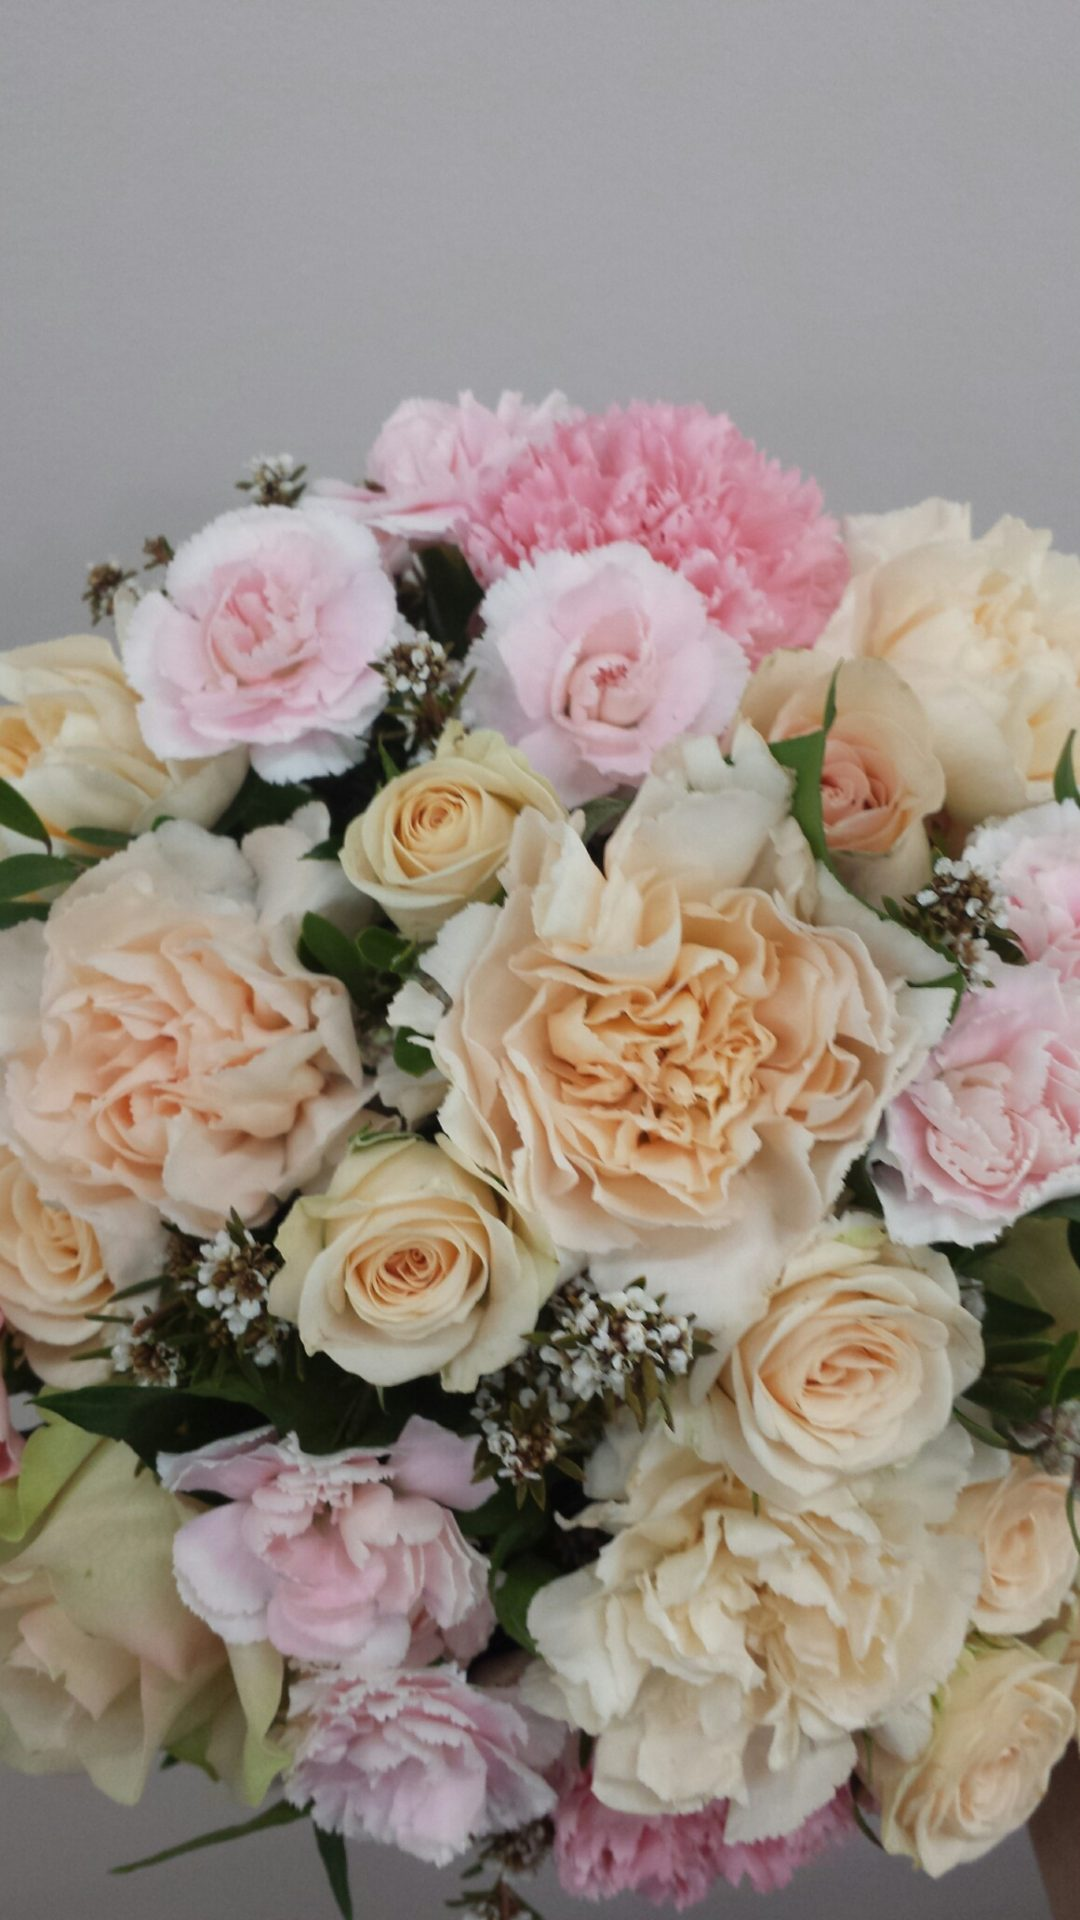 Pastel roses, carnations and spray roses